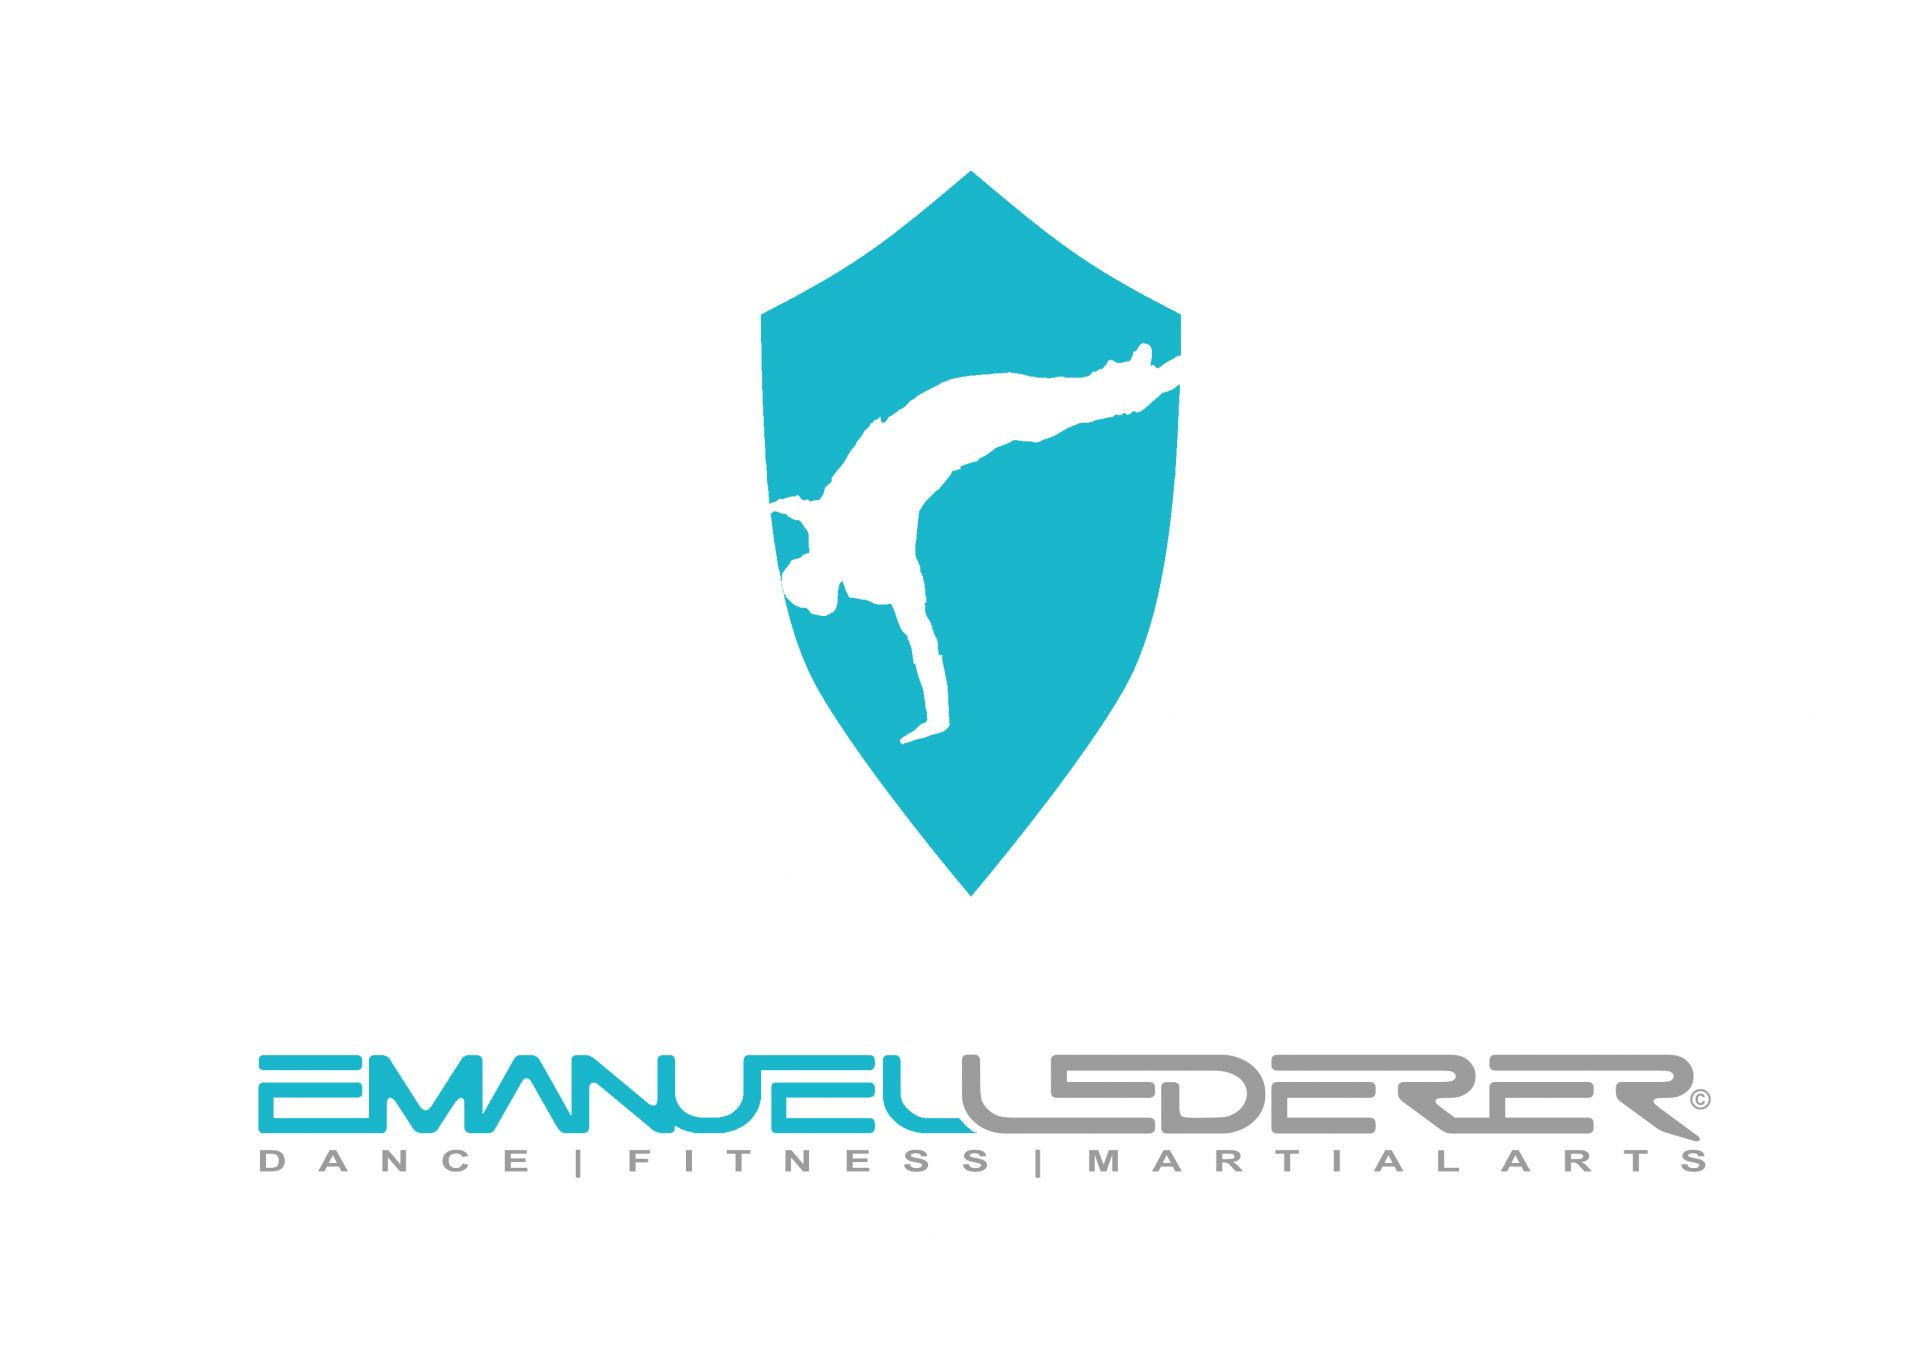 Emanuel Lederer | PERSONAL TRAINING | Fitness | Martial Arts | Dance About